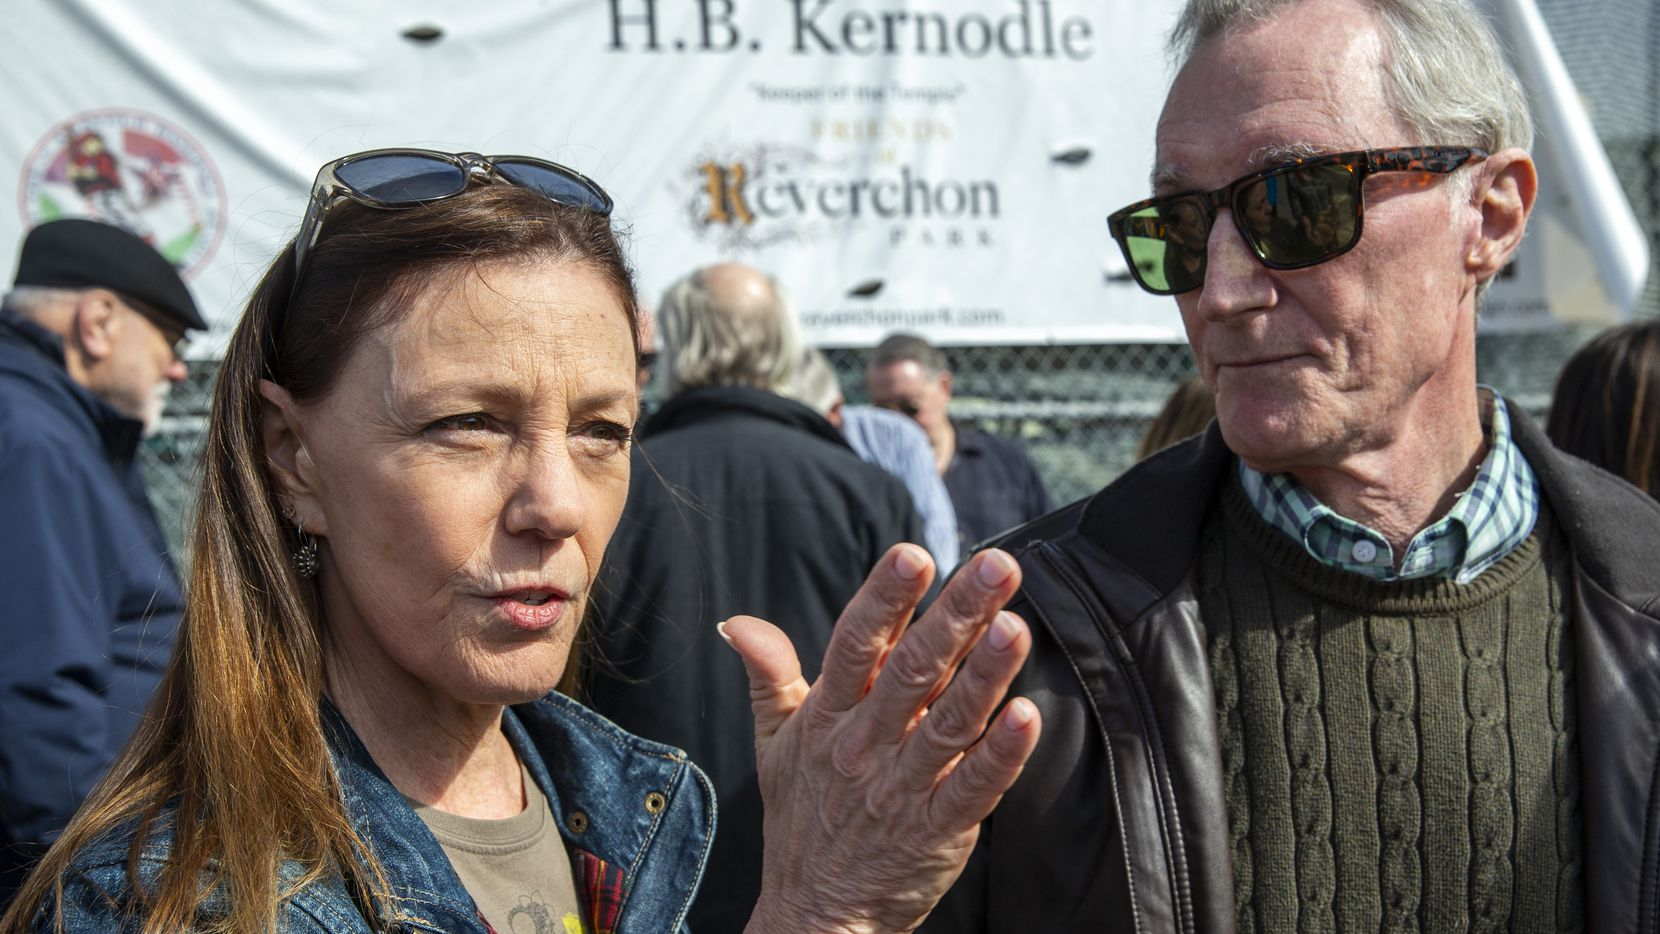 Charlotte (left) and Robert Barner talk about the potential ramifications of a privately developed baseball field during a press conference at Reverchon Park in the Oak Lawn/Uptown area of Dallas on Friday, Feb. 7, 2020. The Barners filed a lawsuit against the City of Dallas for allowing a $15 million deal to allow a private developer to build a baseball stadium in the park without seeking community input. Council members voted 11-4 to approve the deal last month.